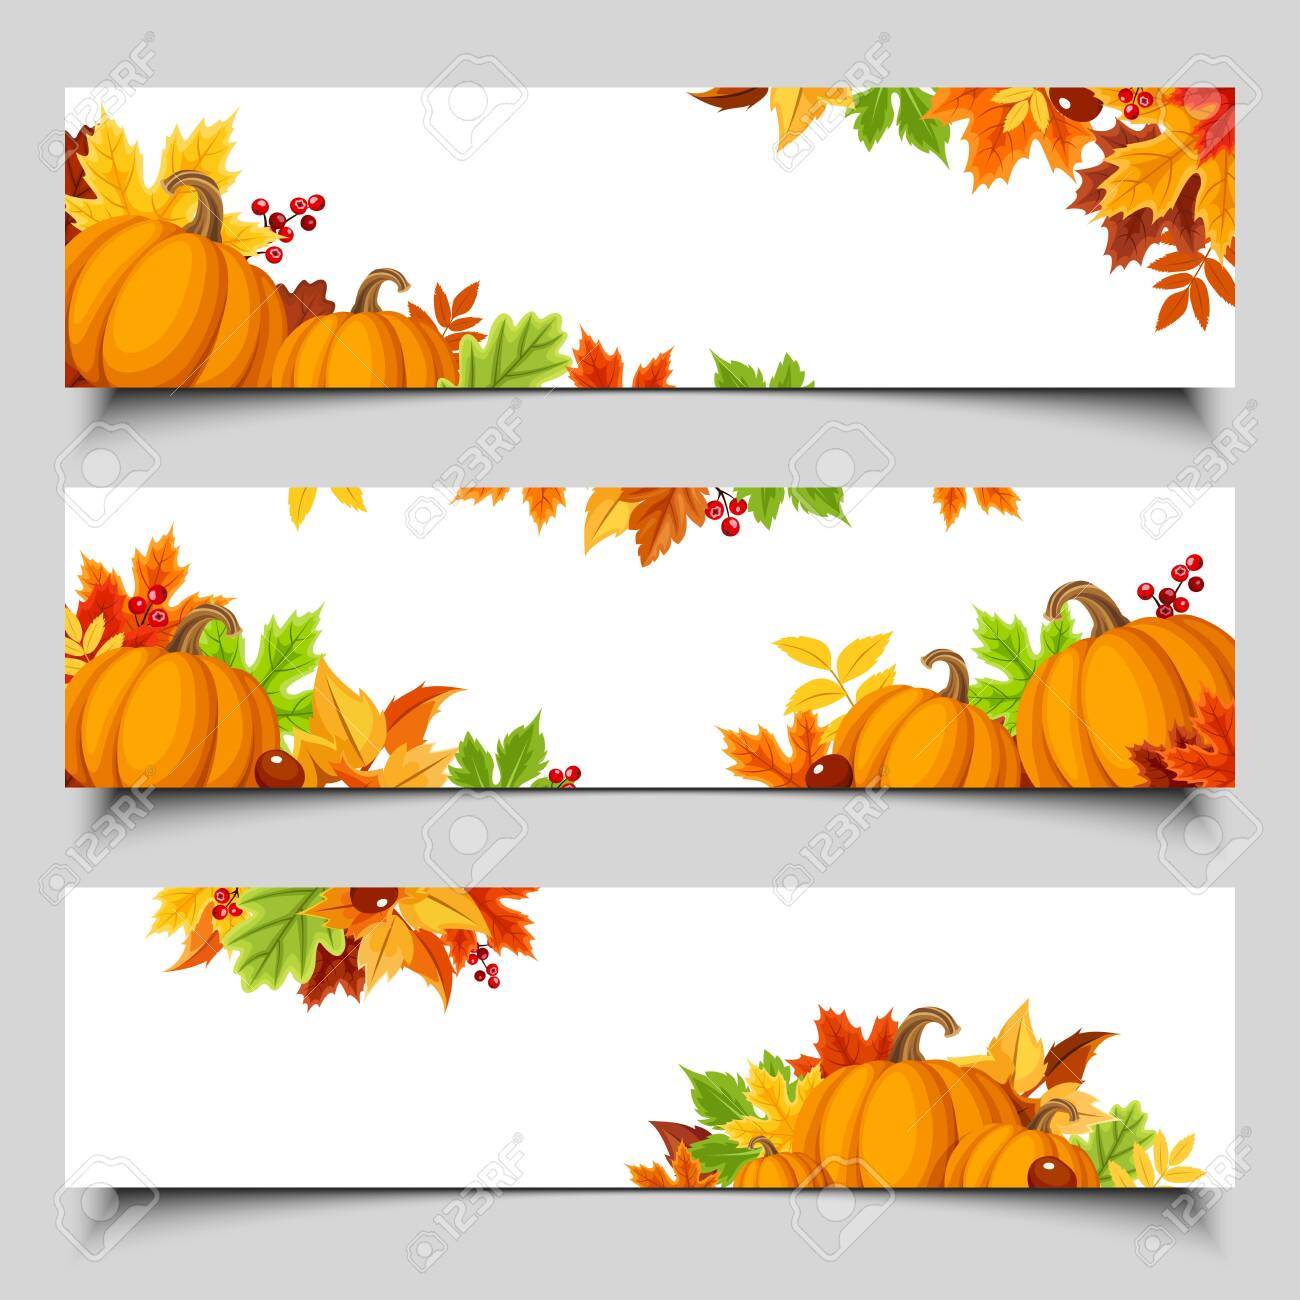 Set of three vector web banners with orange pumpkins and colorful autumn leaves. - 131964320